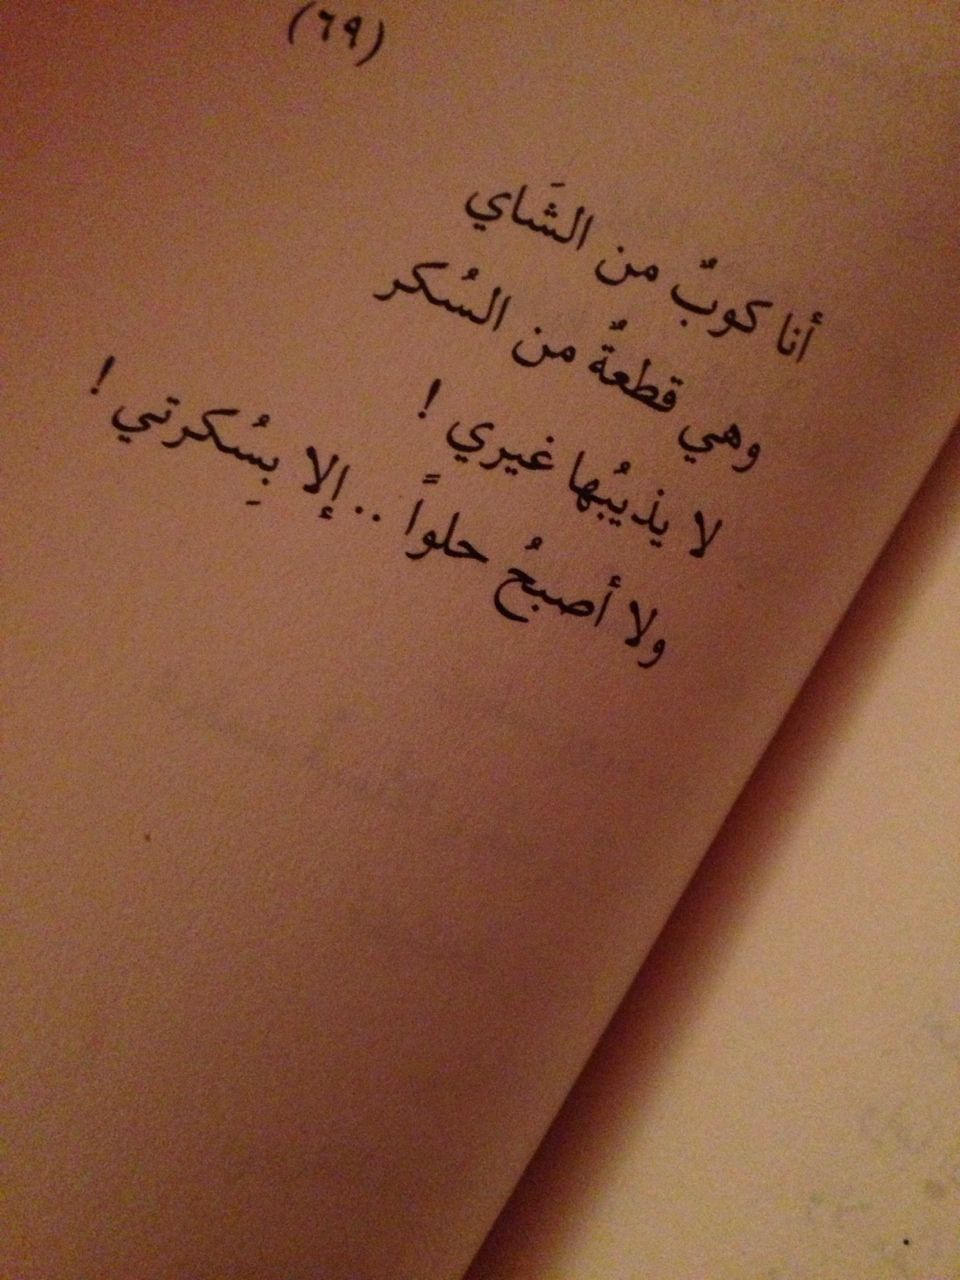 Pin By Shaikha On Verses أبيات Words Quotes Morning Love Quotes Love Yourself Quotes